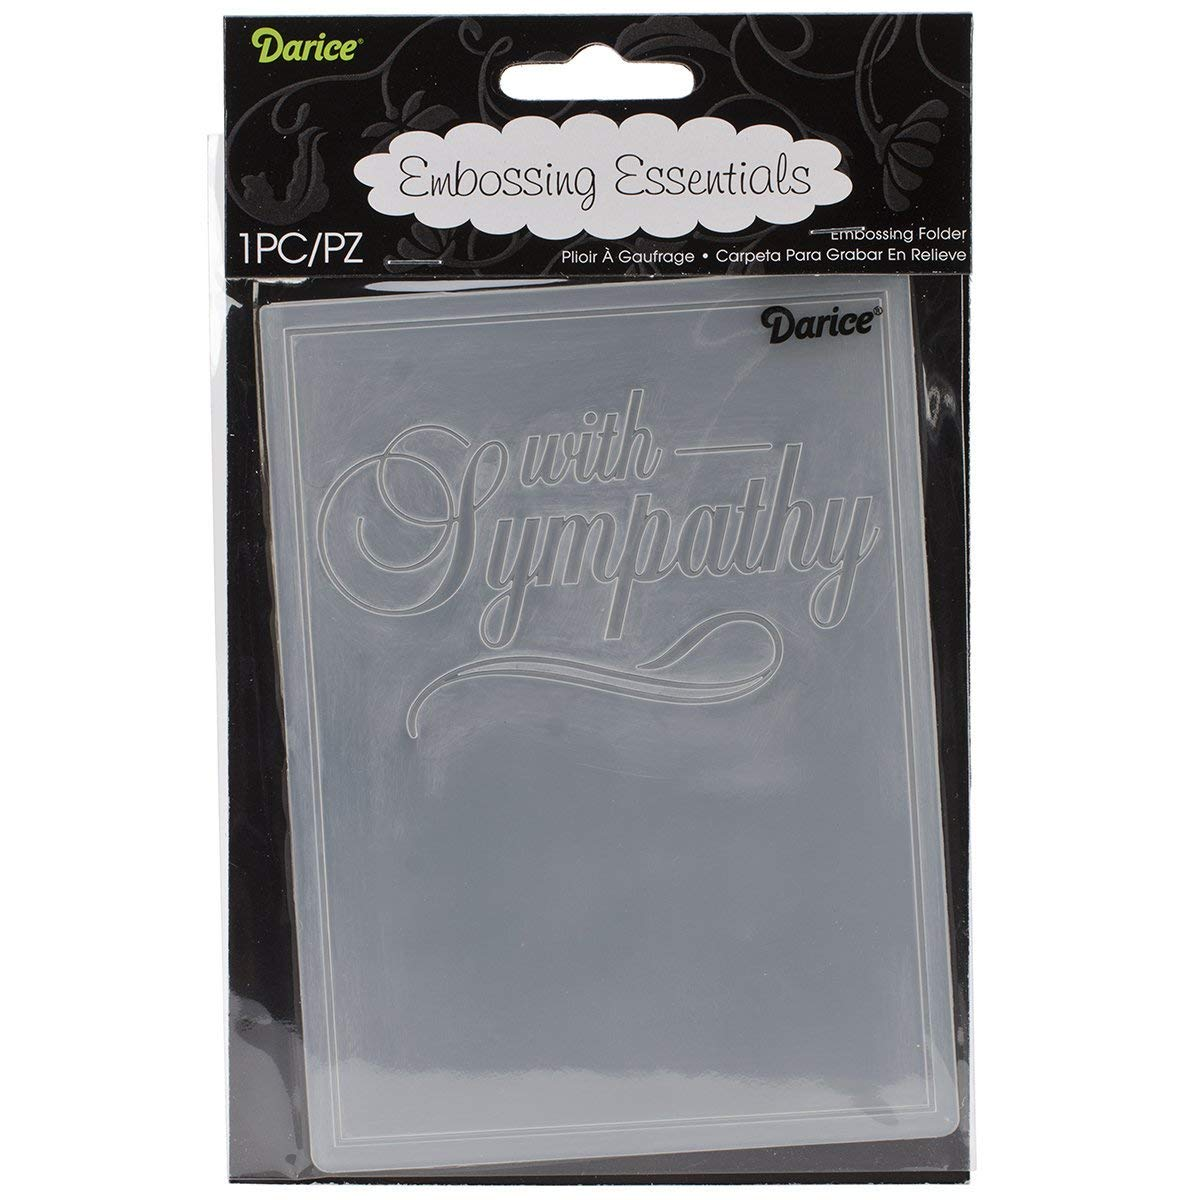 Darice Embossing Folder, 4.25 by 5.75, Design 4.25 by 5.75 1218-121